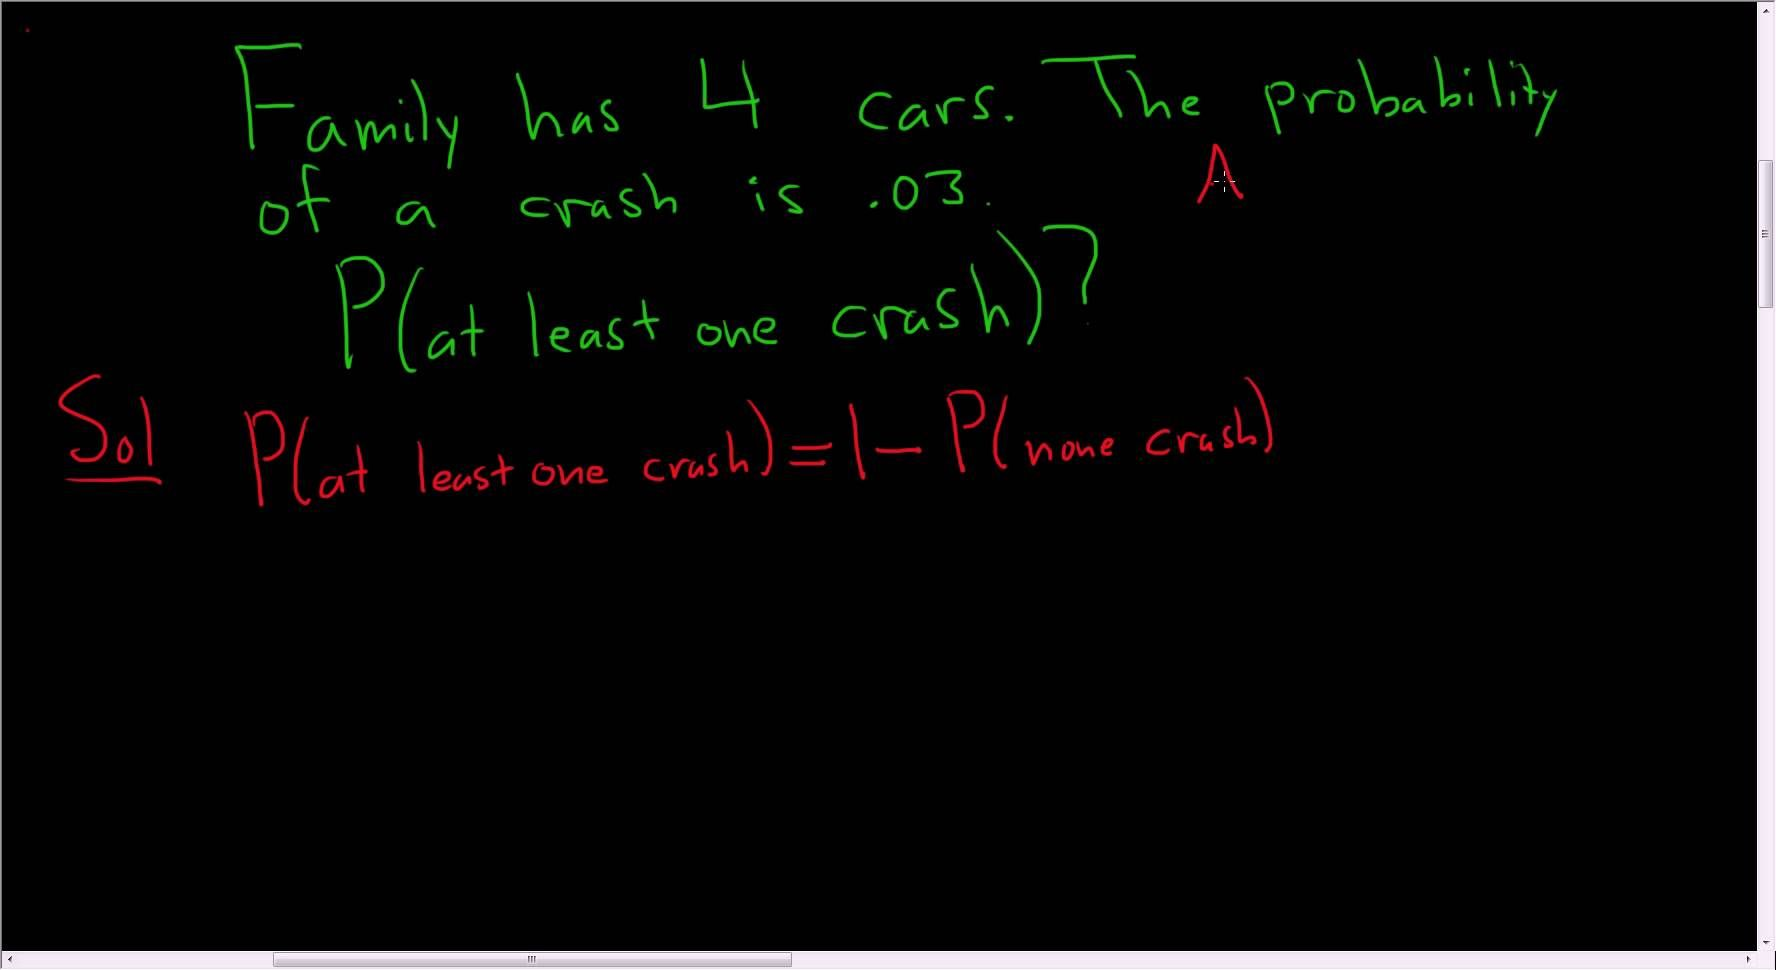 Probability A Family Crashes At Least One Car Multiplication Rule And Co Math Videos Teaching Math Multiplication Rules